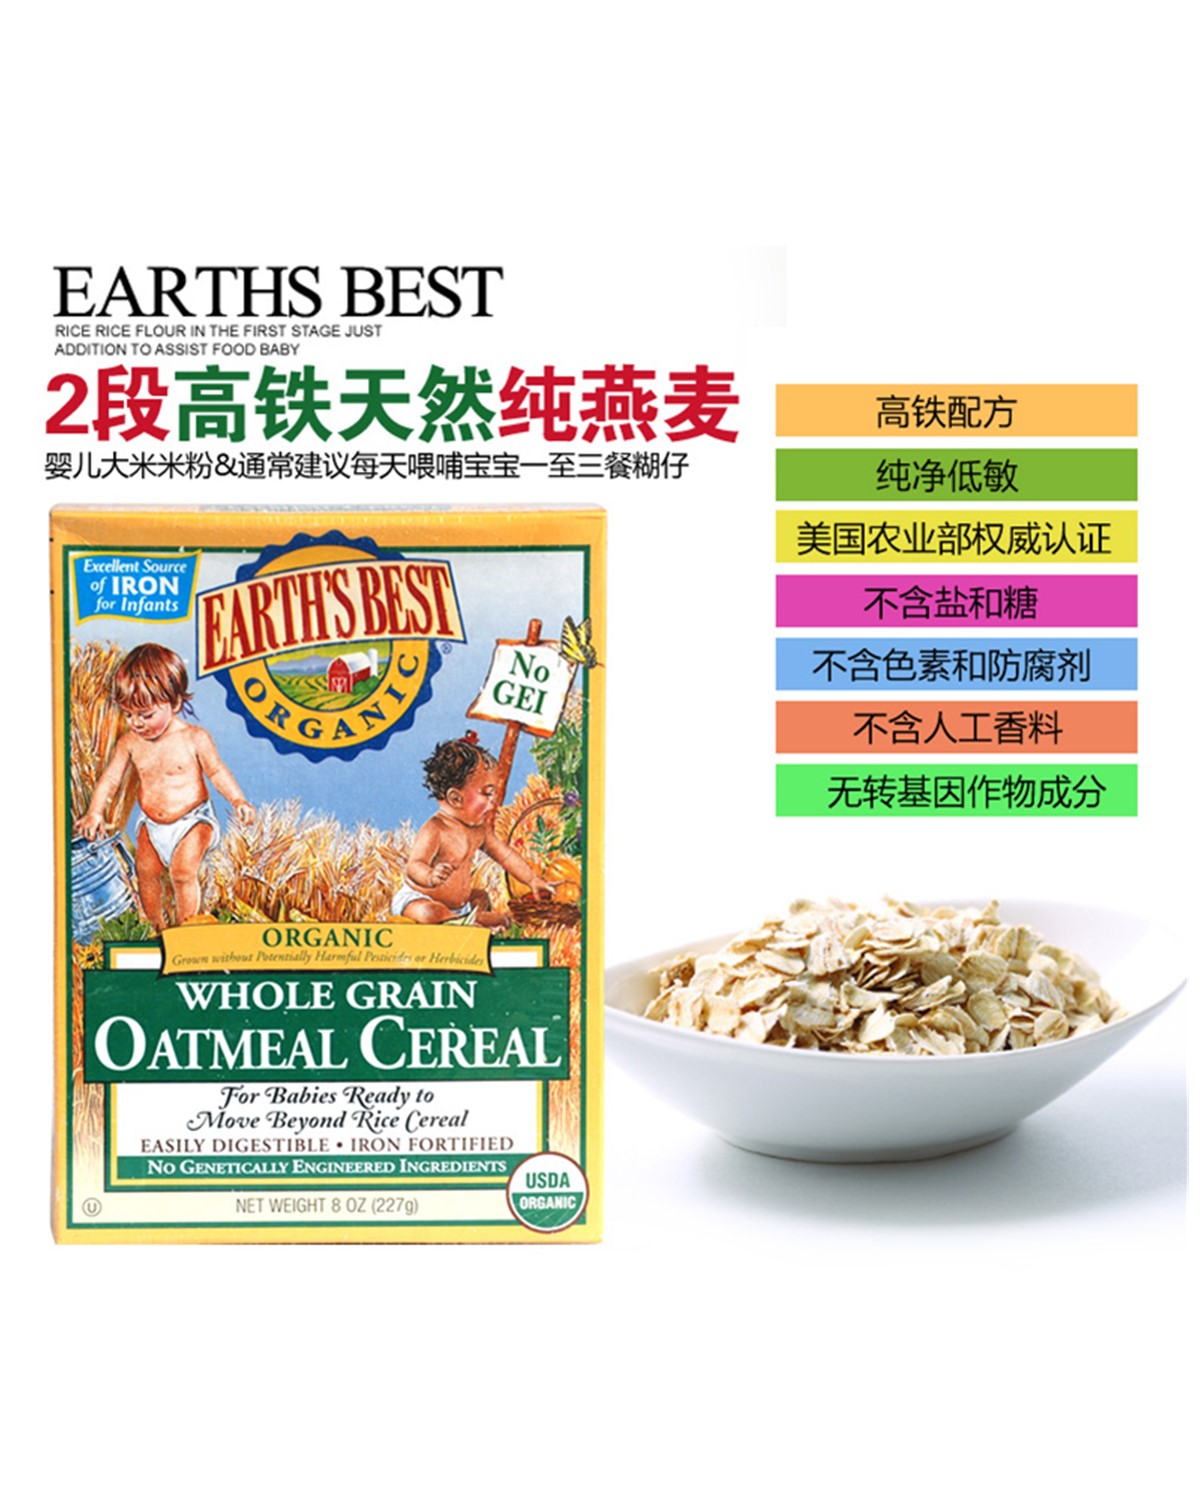 美国 Earth's Best 地球最好婴儿燕麦米粉糊2段 227g 保质期到2018.11.16